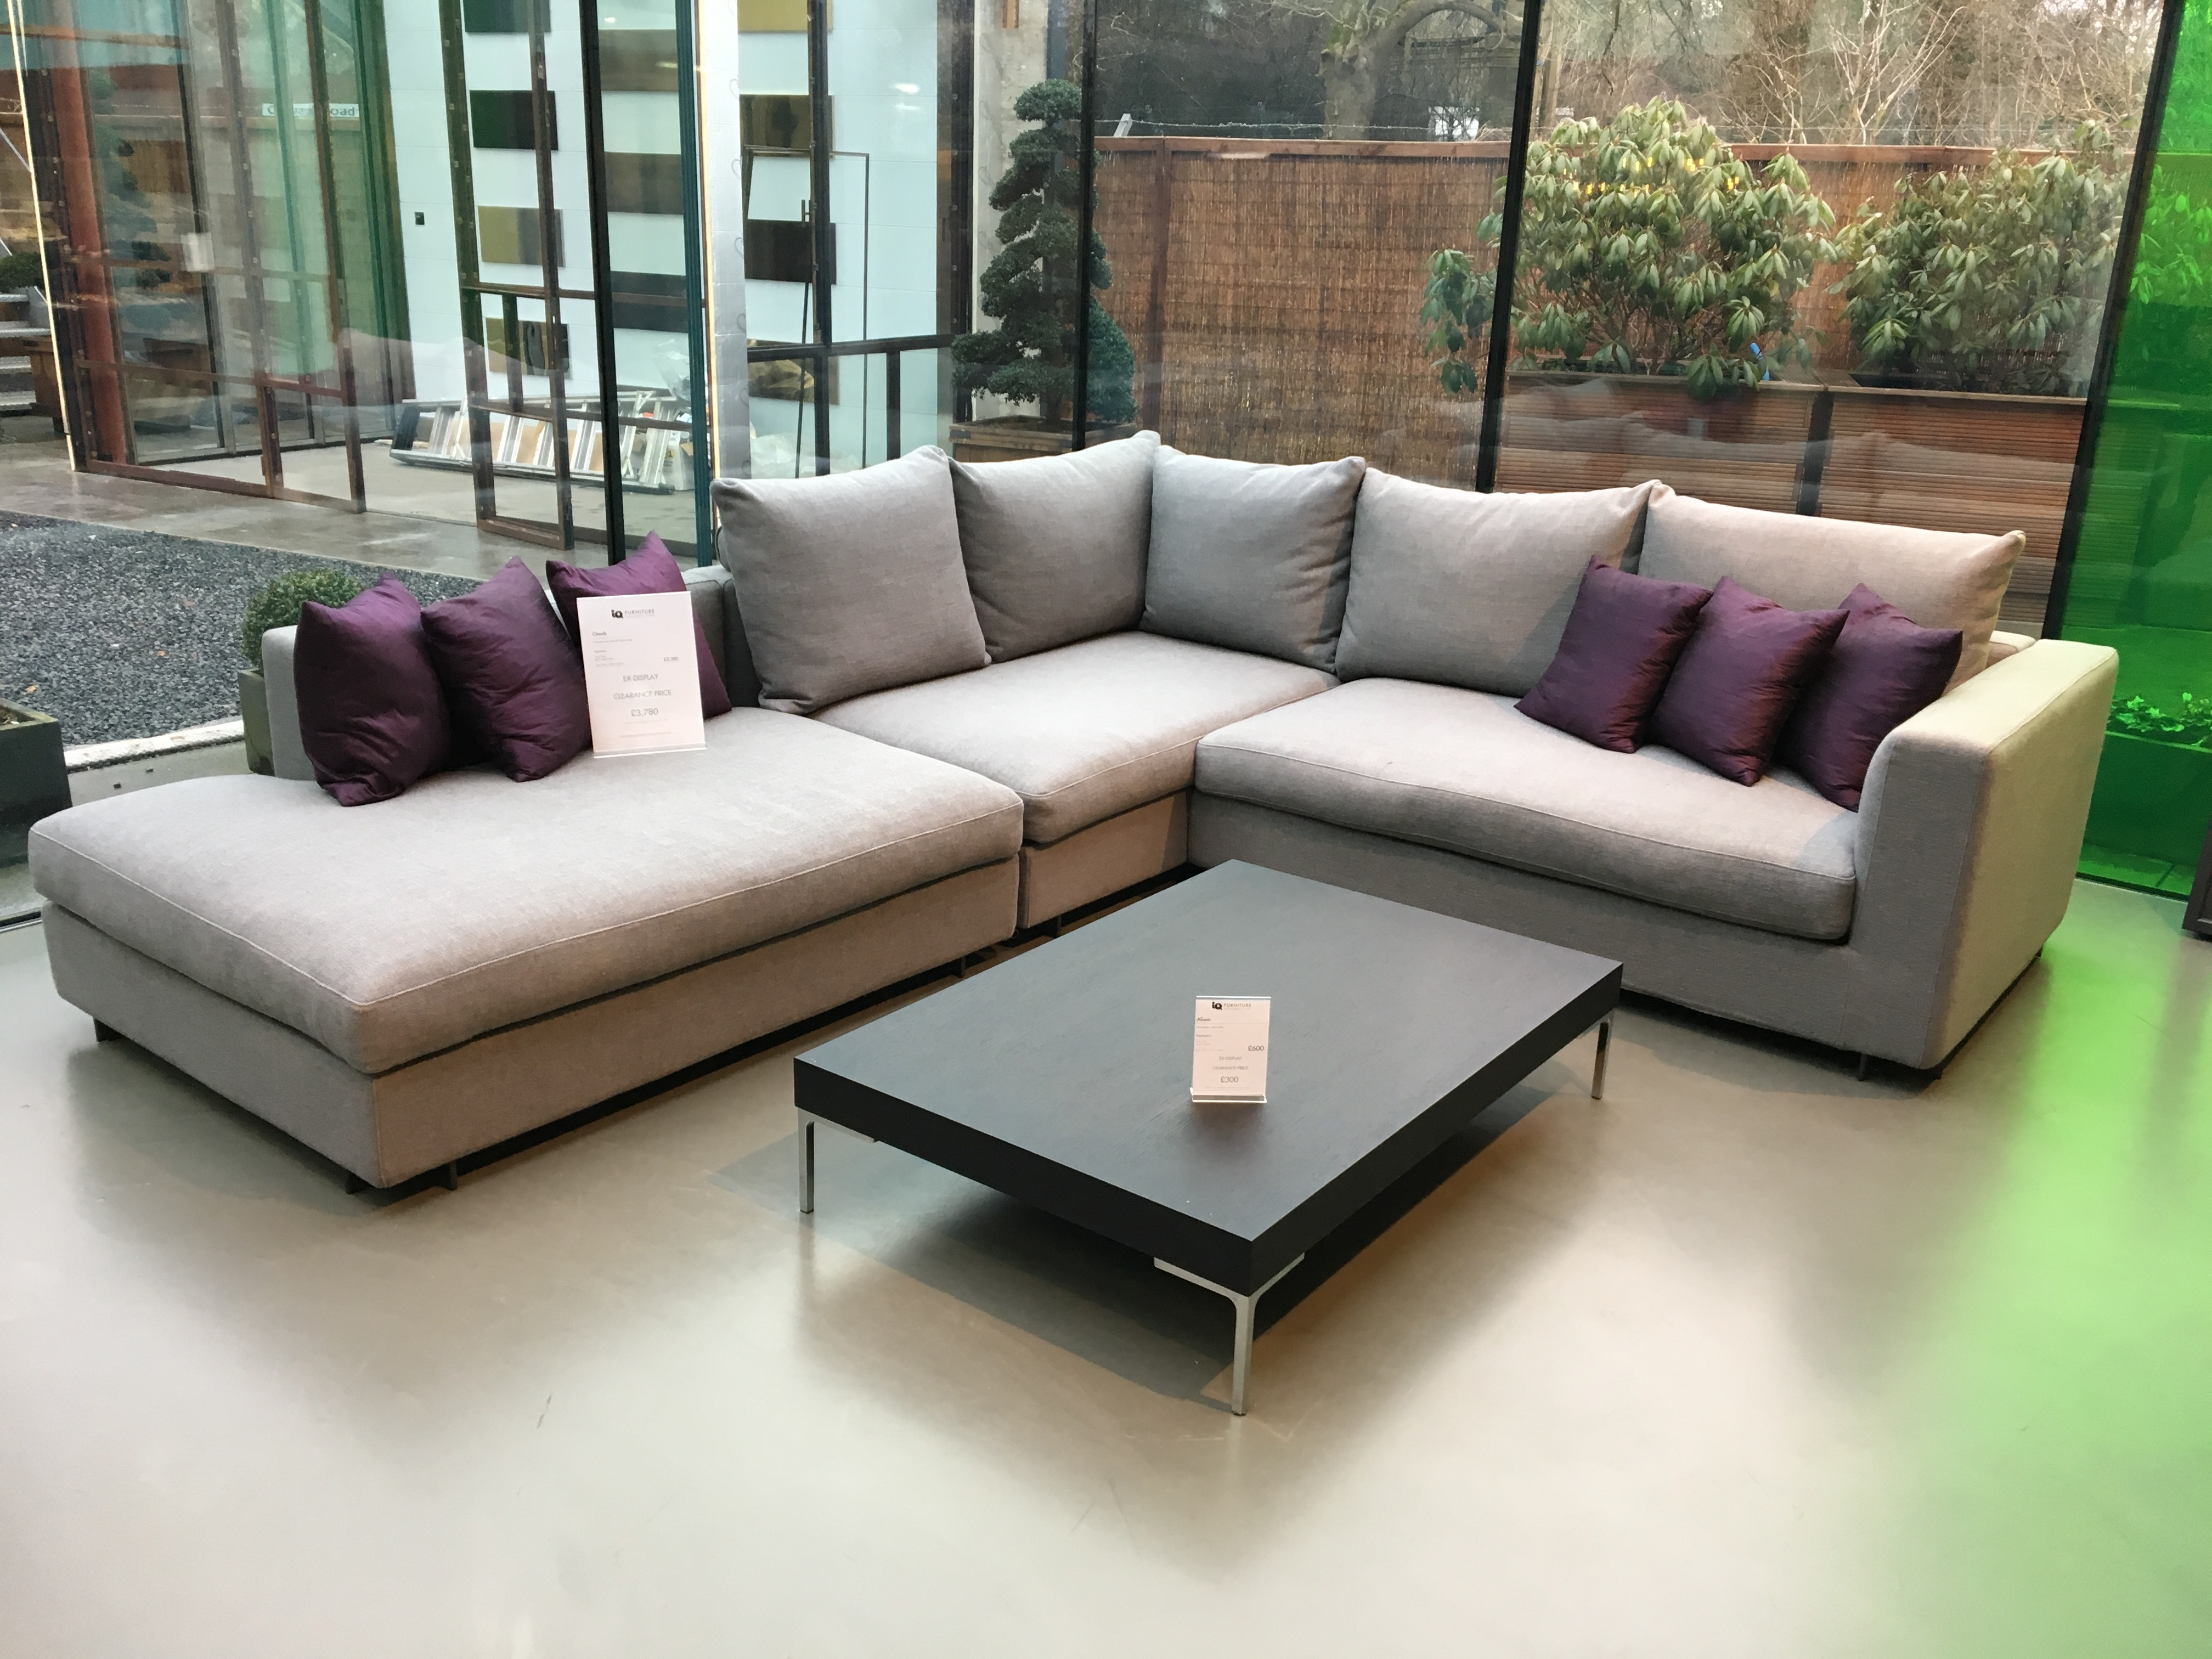 Ex Display Sofa Our Latest Clearance Sale Items 15th March 2017 News Iq